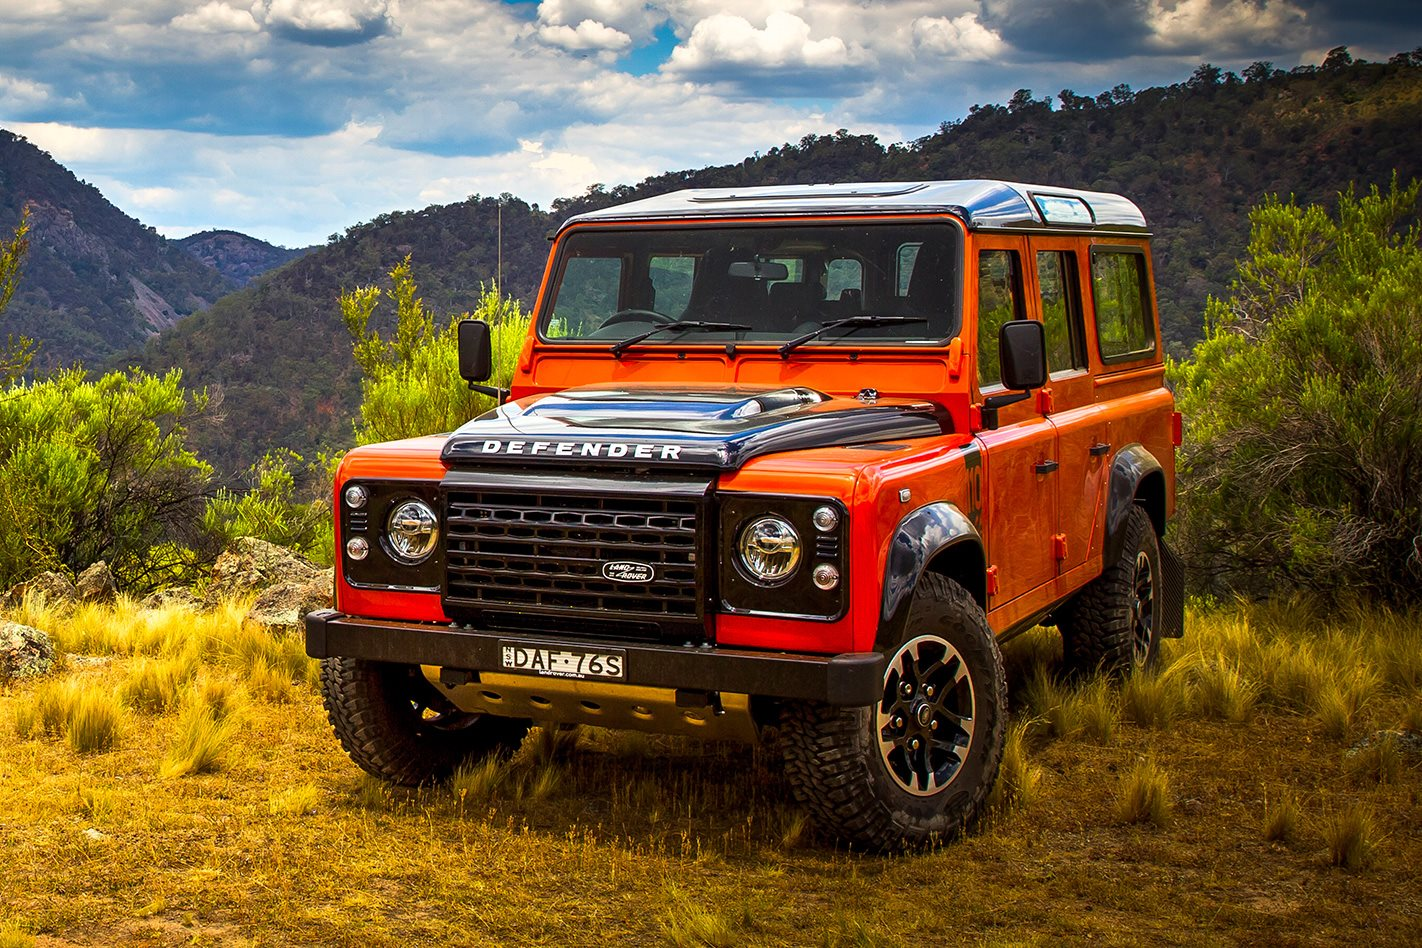 land rover defender 110 adventure 4x4 australia. Black Bedroom Furniture Sets. Home Design Ideas